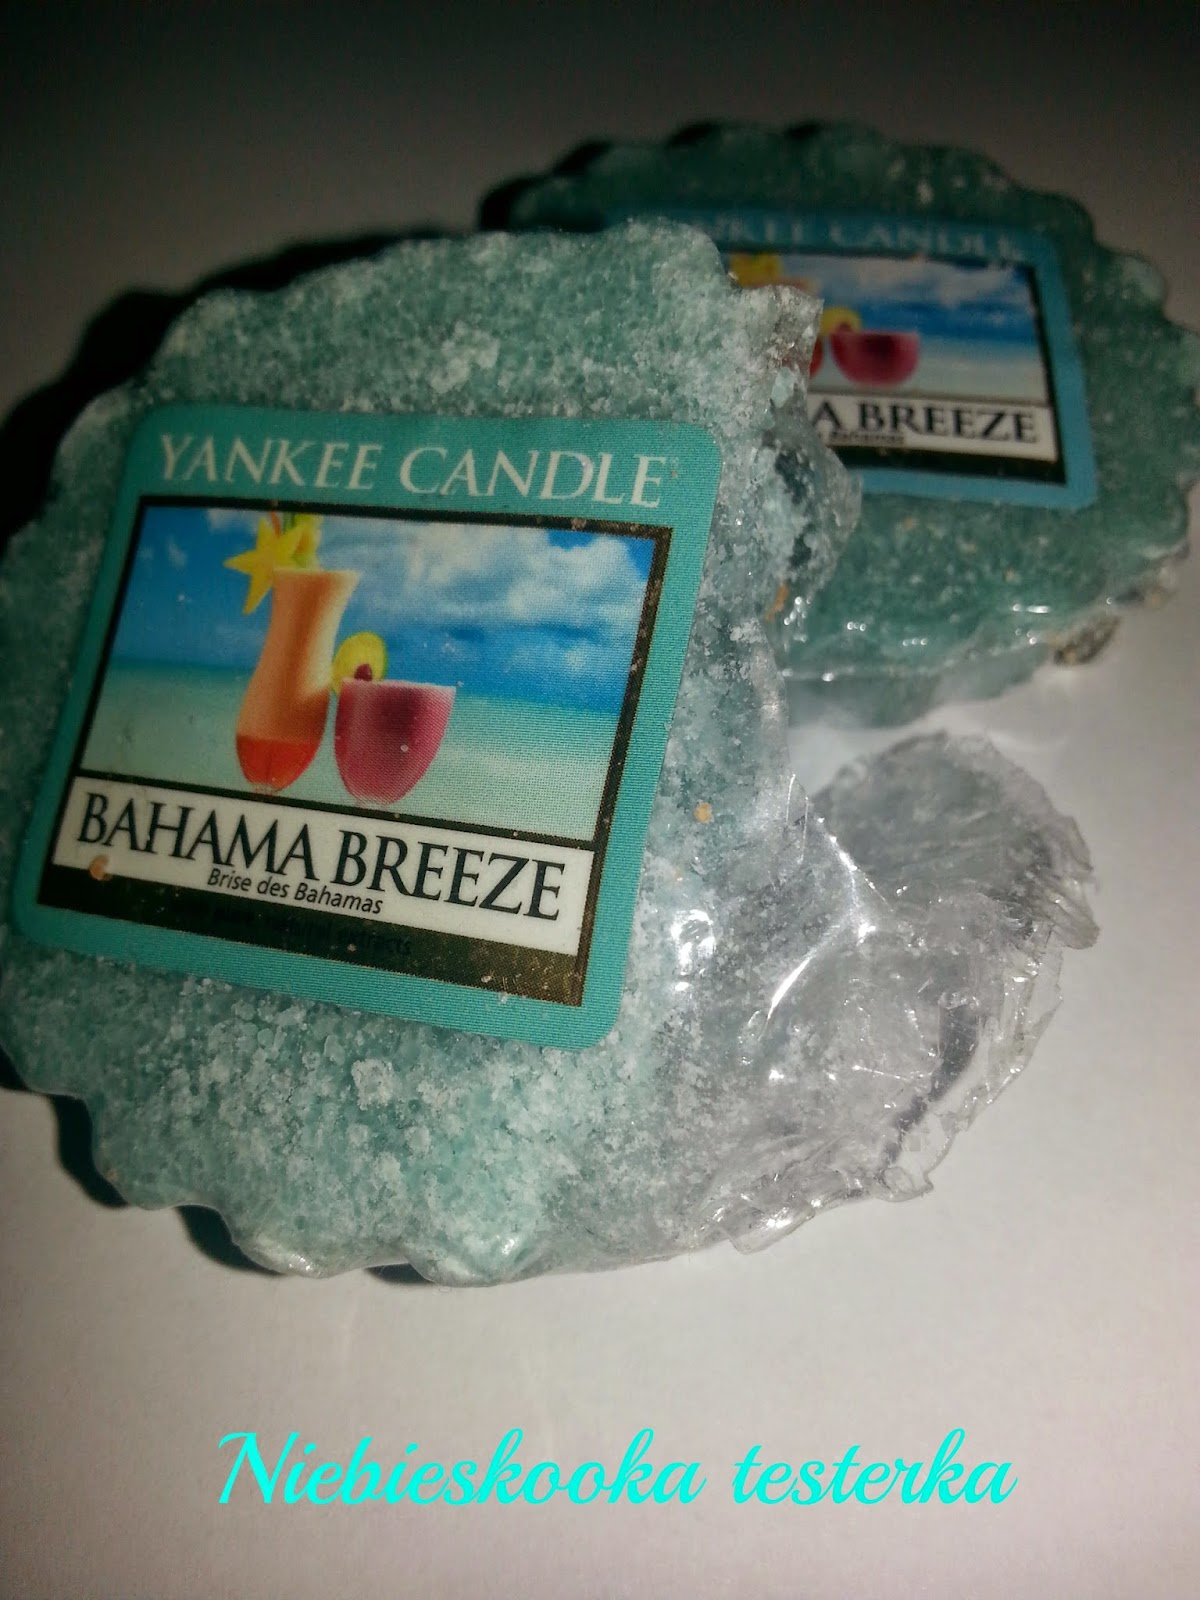 Bahama Breeze - Yankee Candle